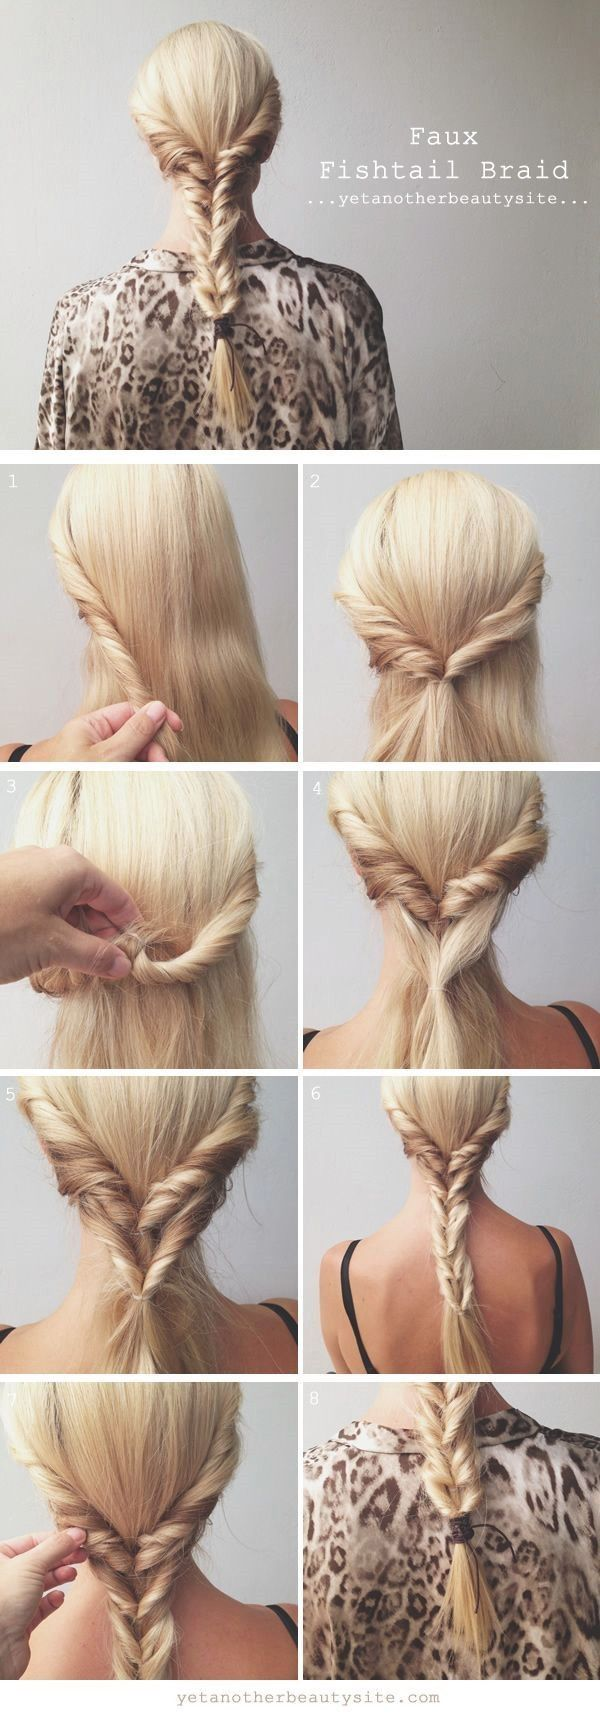 Quick Hairstyle Tutorials For Office Women #hair #hairstyles